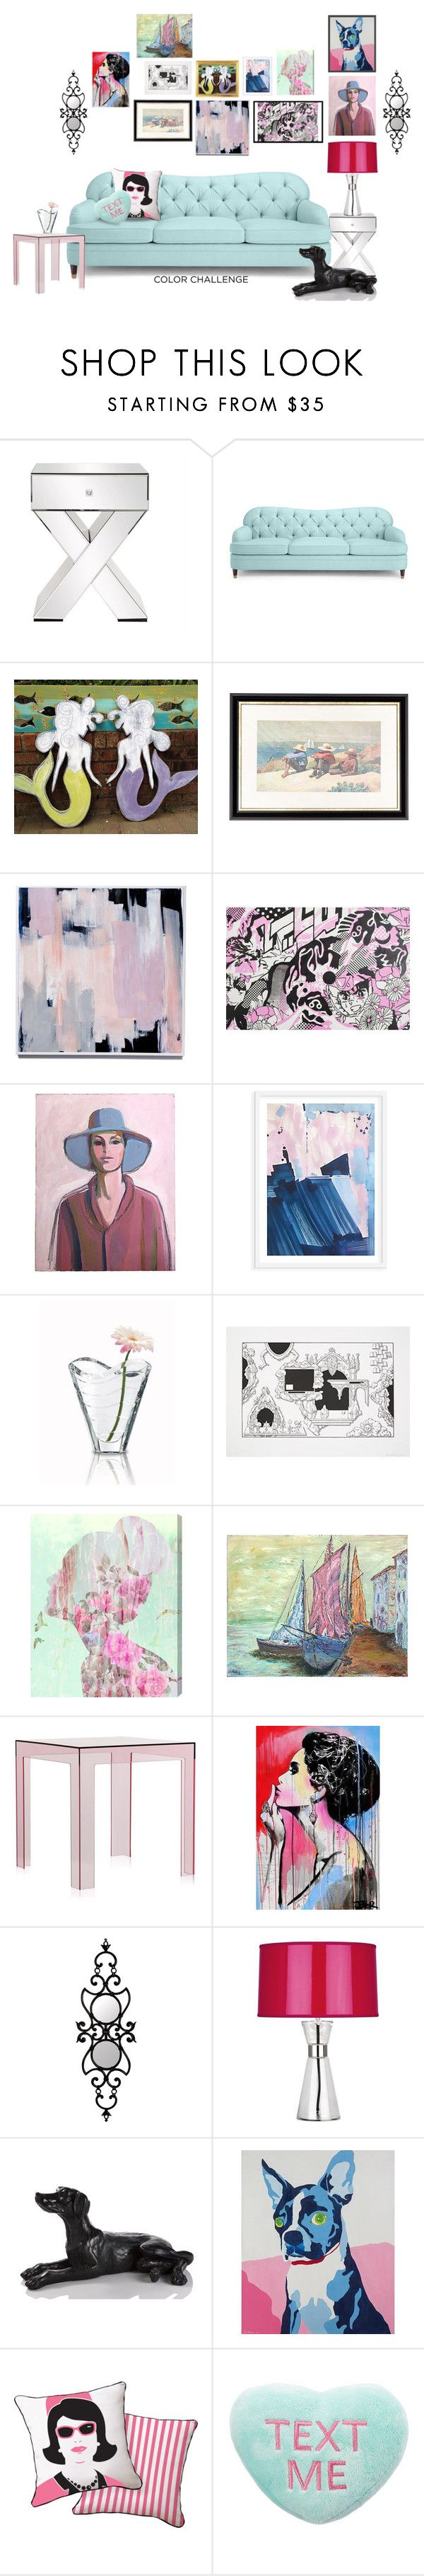 """""""It's A Dog's Life"""" by kathyaalrust ❤ liked on Polyvore featuring interior, interiors, interior design, home, home decor, interior decorating, Kate Spade, Munn Works, Baccarat and Oliver Gal Artist Co."""